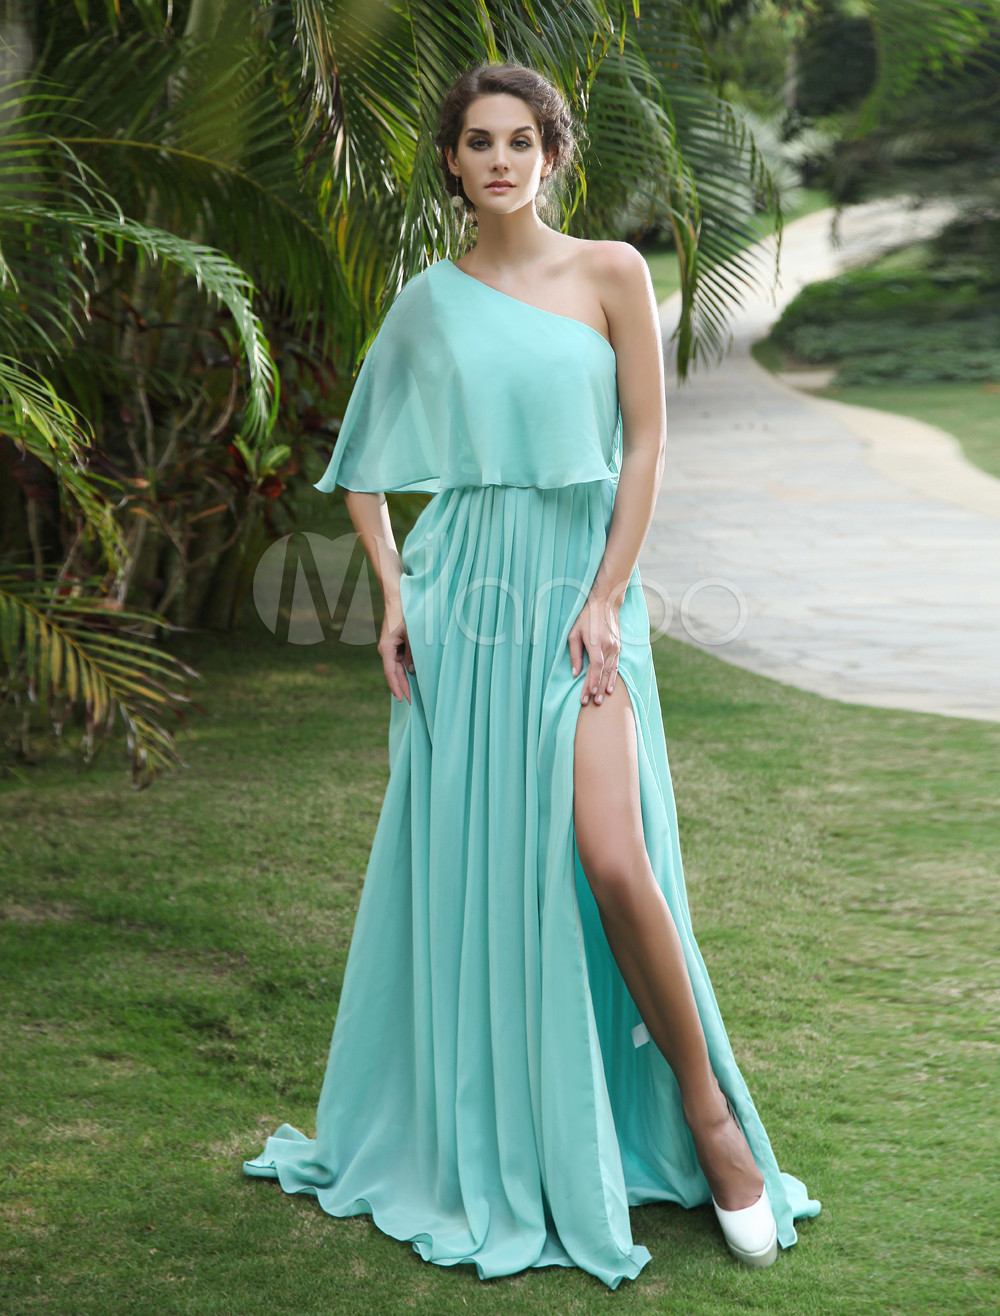 Buy Chiffon Prom Dress Mint Green One Shoulder Evening Dress High Split Floor Length Formal Dress for $143.99 in Milanoo store